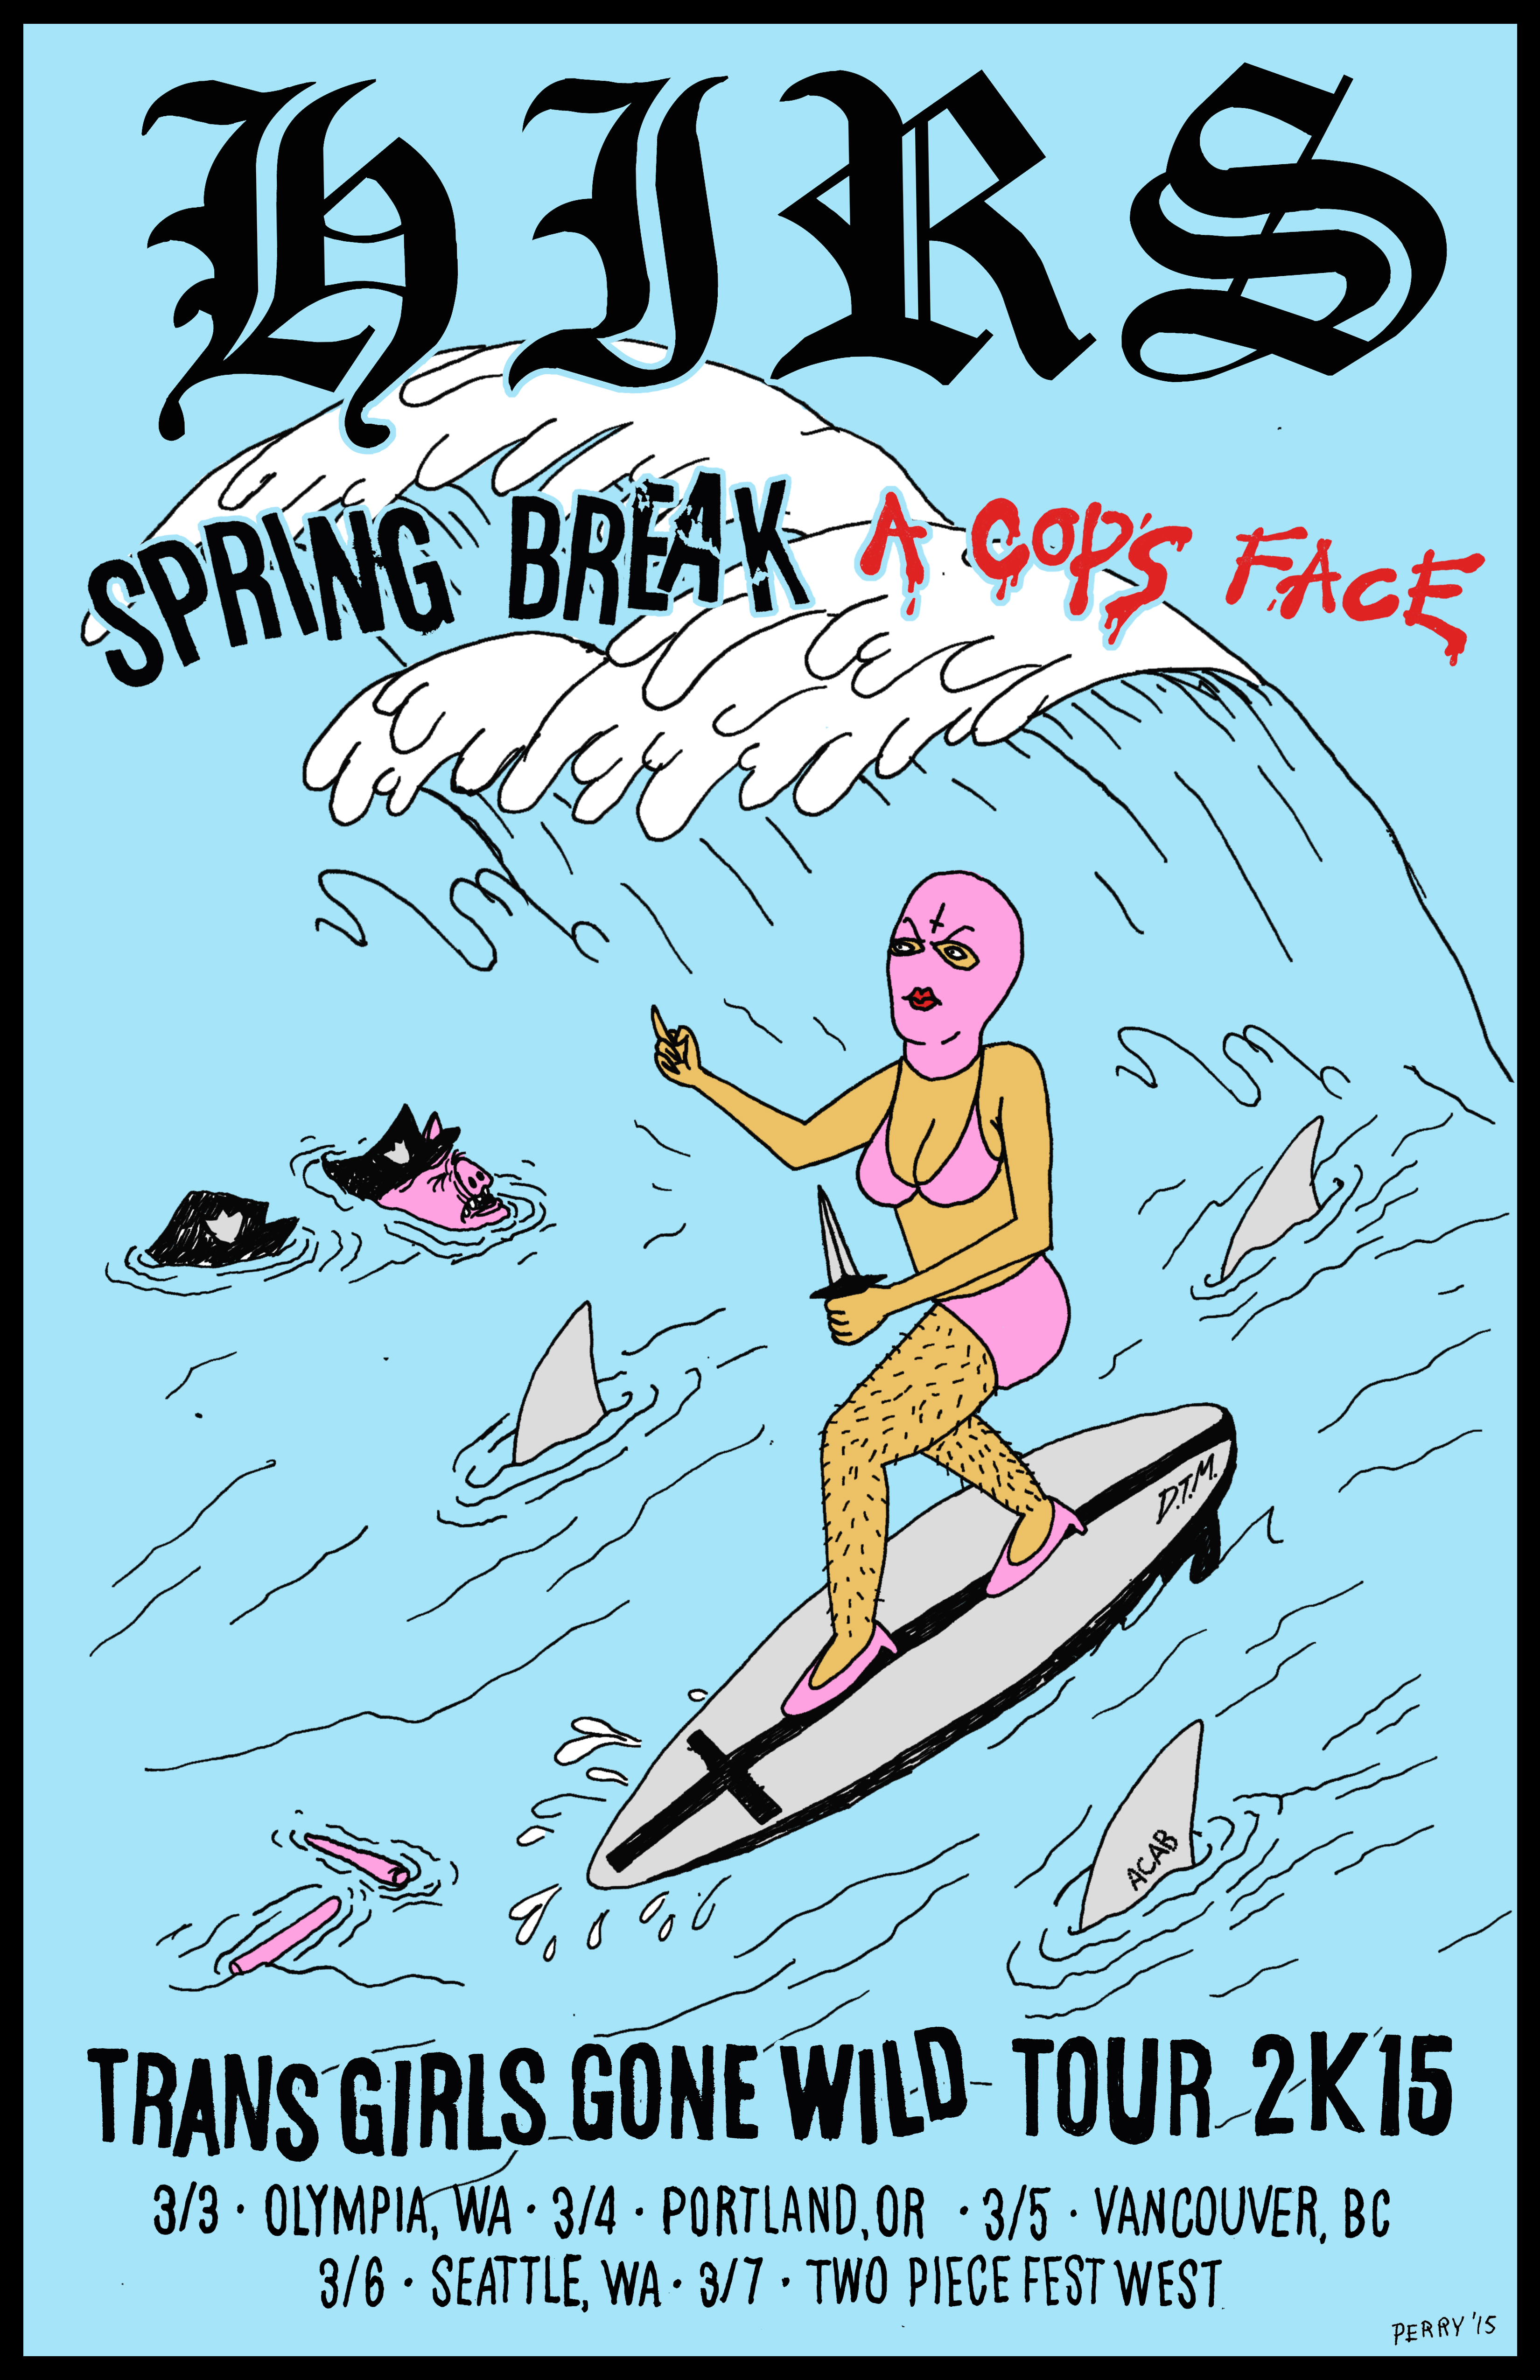 SPRING BREAK A COPS FACE TRANS GIRLS GONE WILD TOUR 2K15 72. march 3rd, 2015 @ olympia wa 73. march 4th, 2015 @ portland or 74. march 5th, 2015 @ vancouver bc 75. march 6th, 2015 @ seattle wa 76. march 7th, 2015 @ 924 gilman street. 2 Piece Fest West